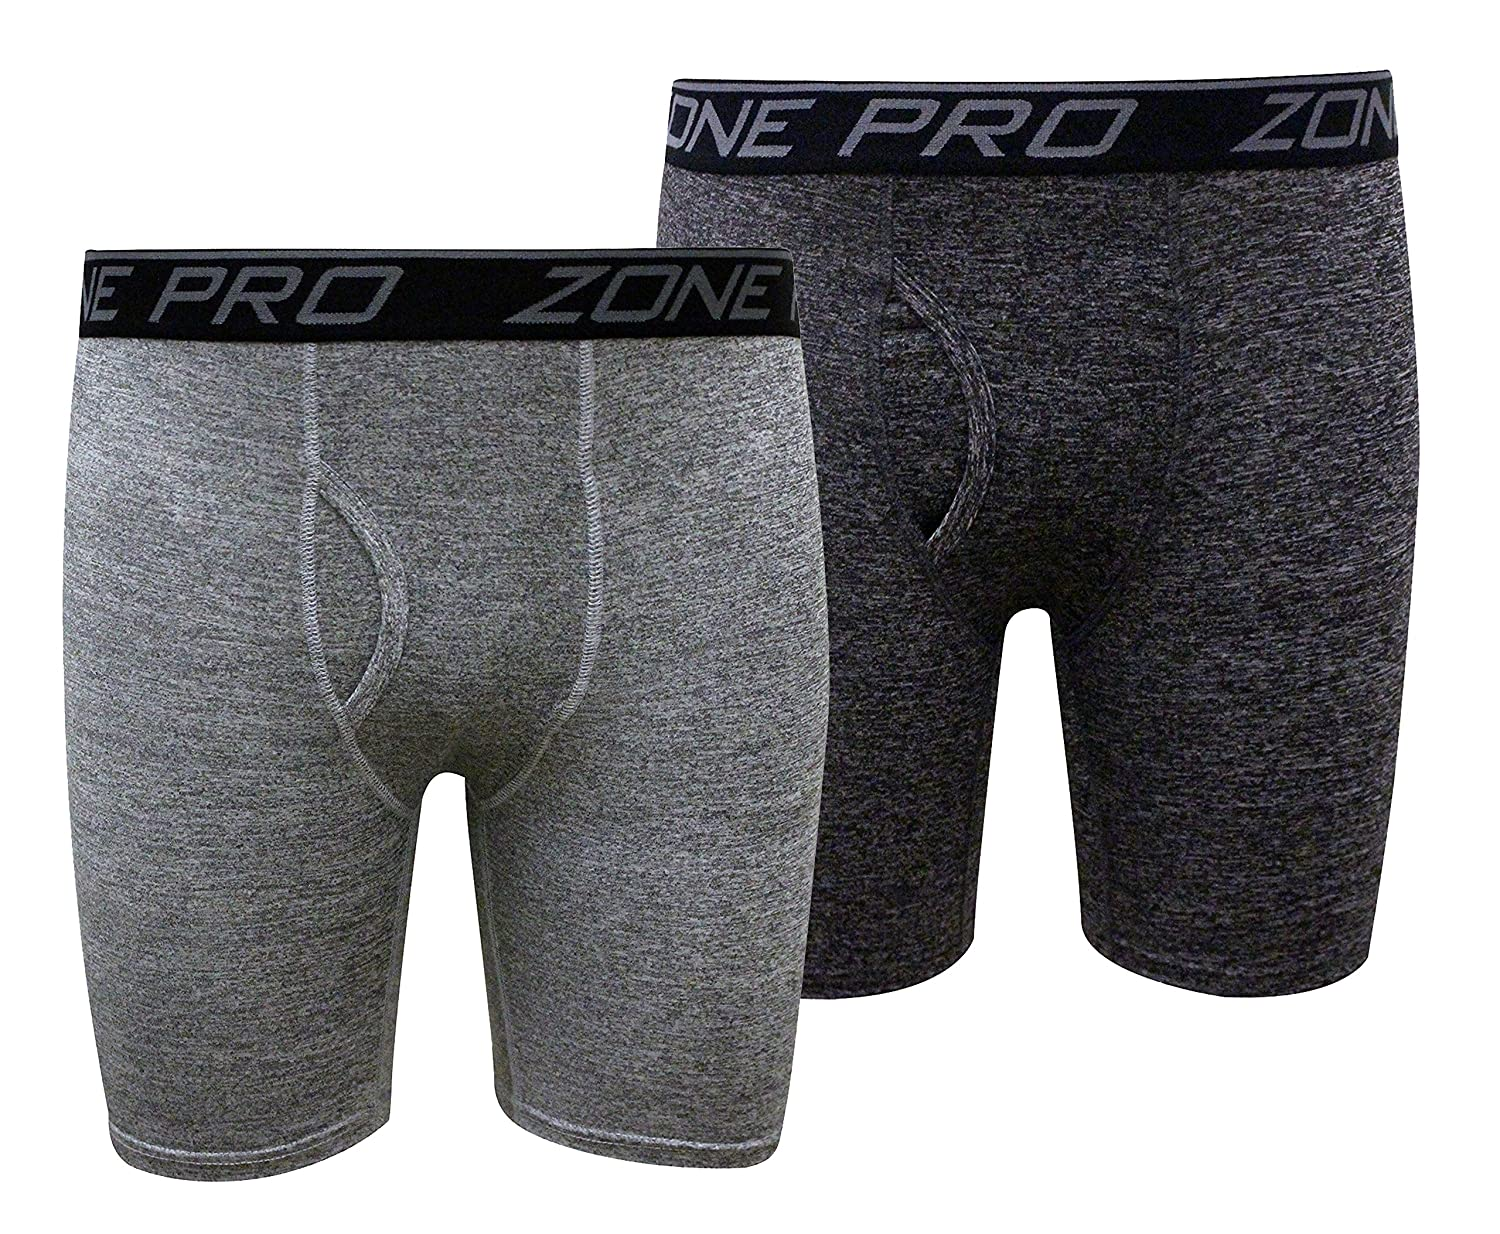 Zone Pro Athletic Men Compression Underwear Shorts - 2 Pack Combo